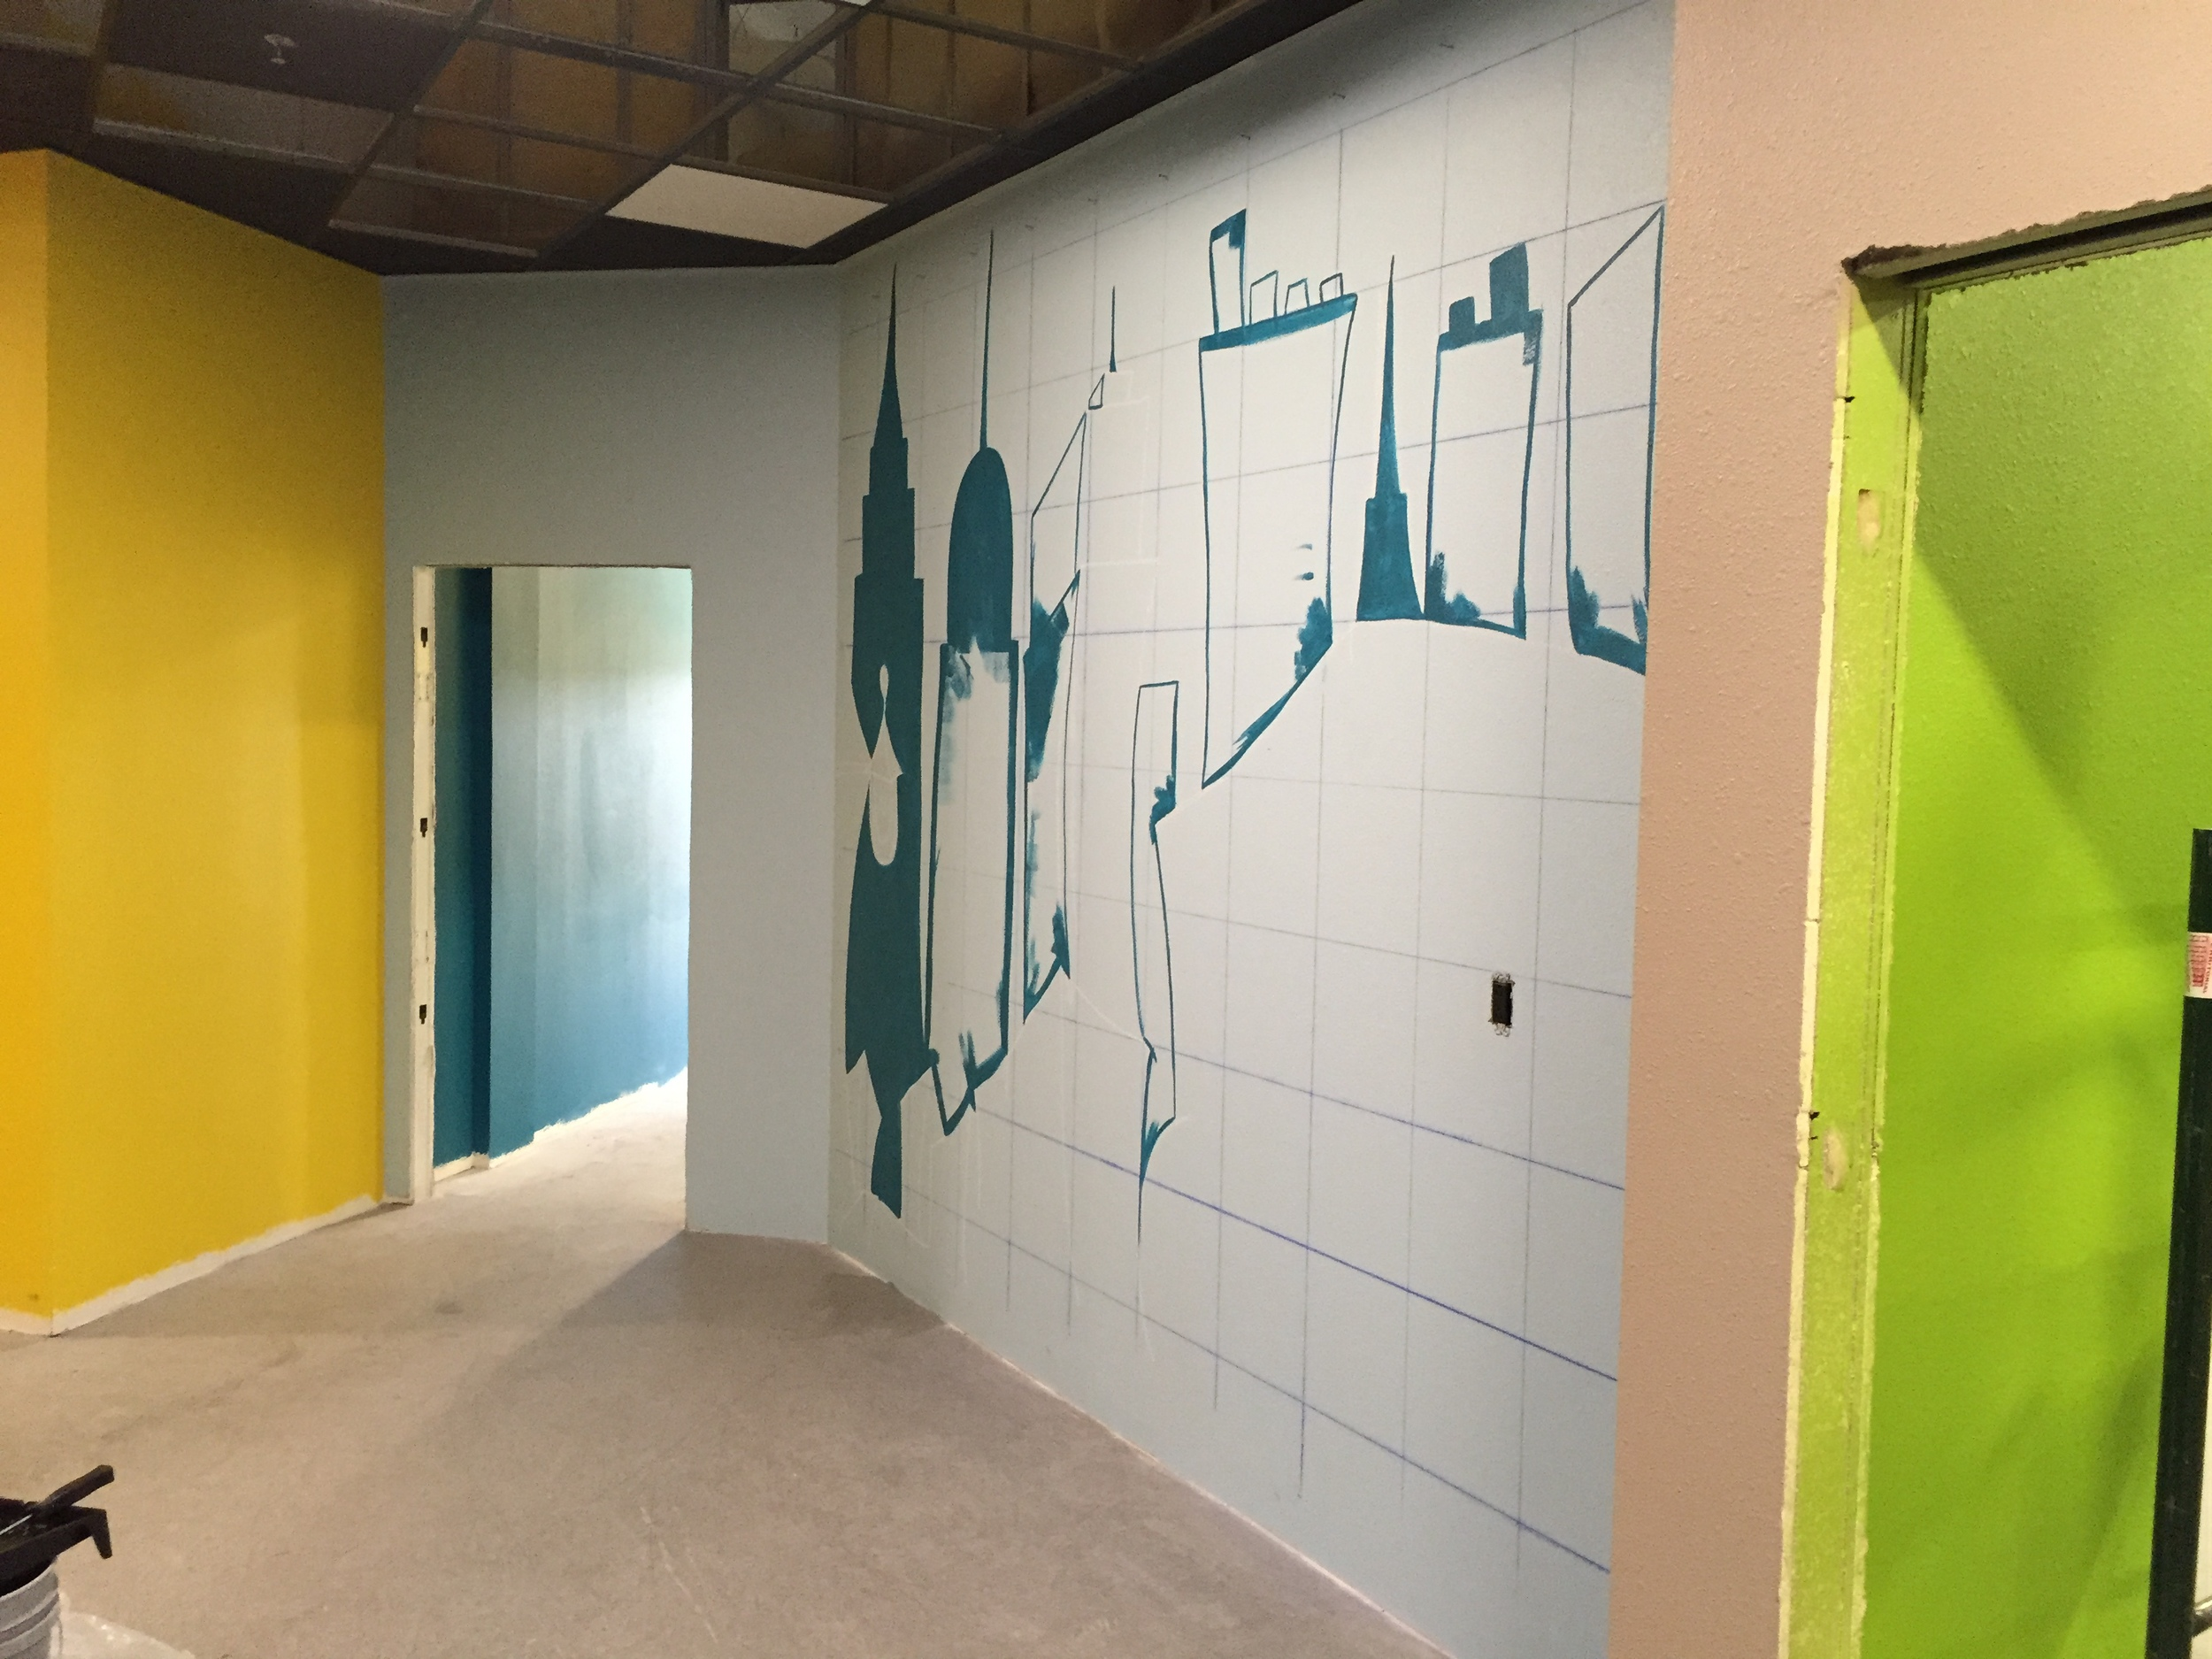 The beginnings of the mural in the Kids' City check-in area.